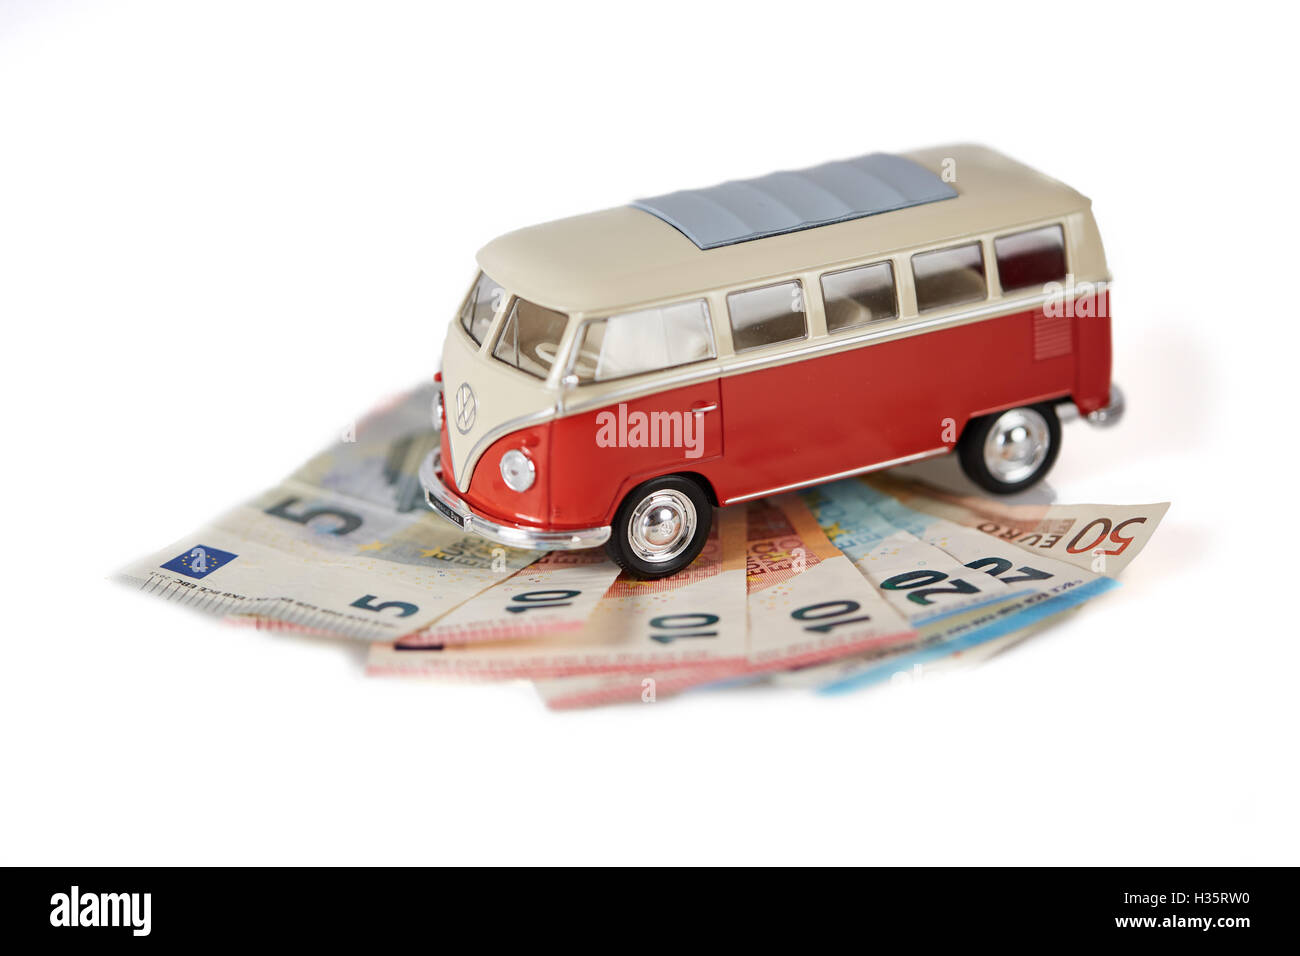 Isolated figurine vw bus on european banknotes money - Stock Image